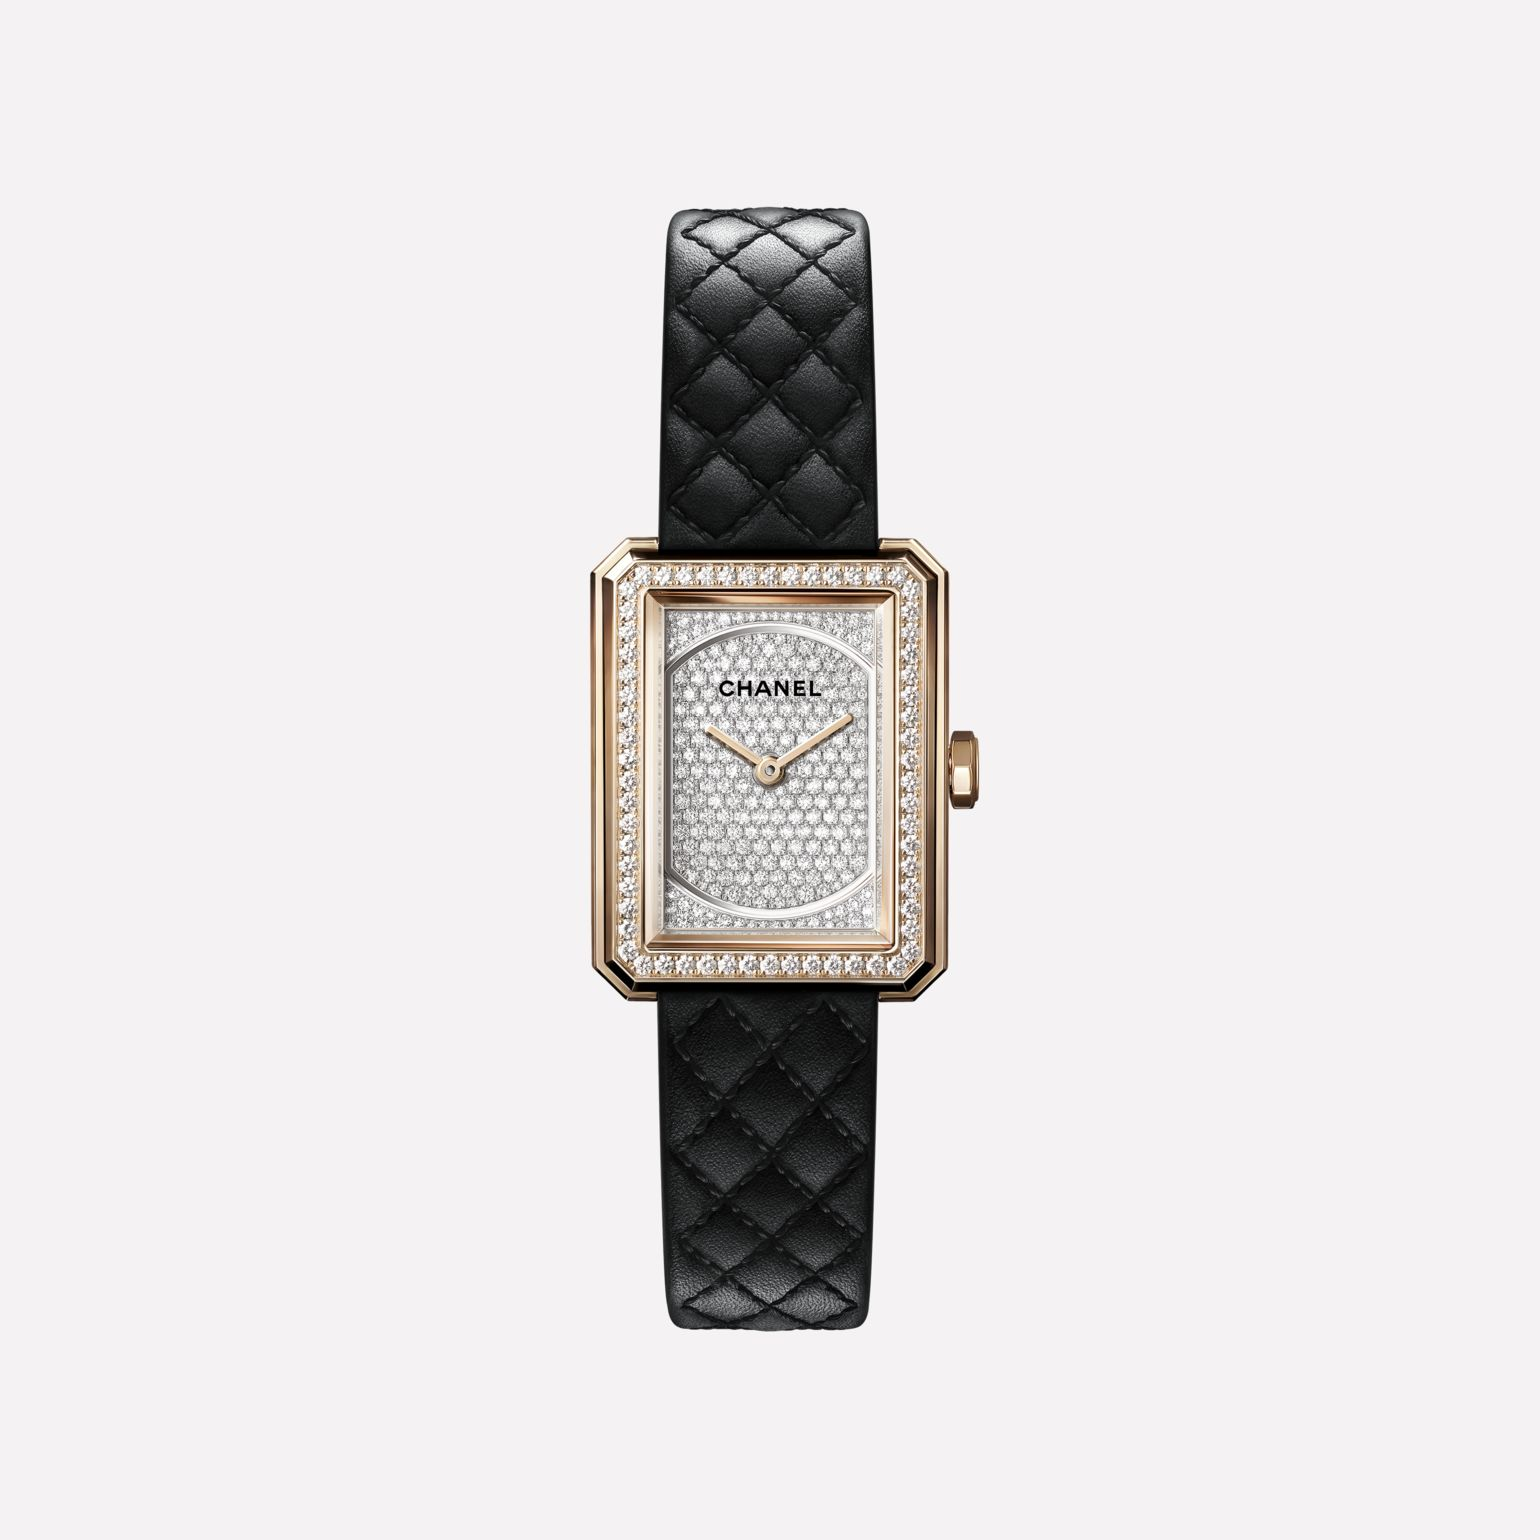 BOY·FRIEND Watch Small version, BEIGE GOLD and diamonds, alligator pattern calfskin strap